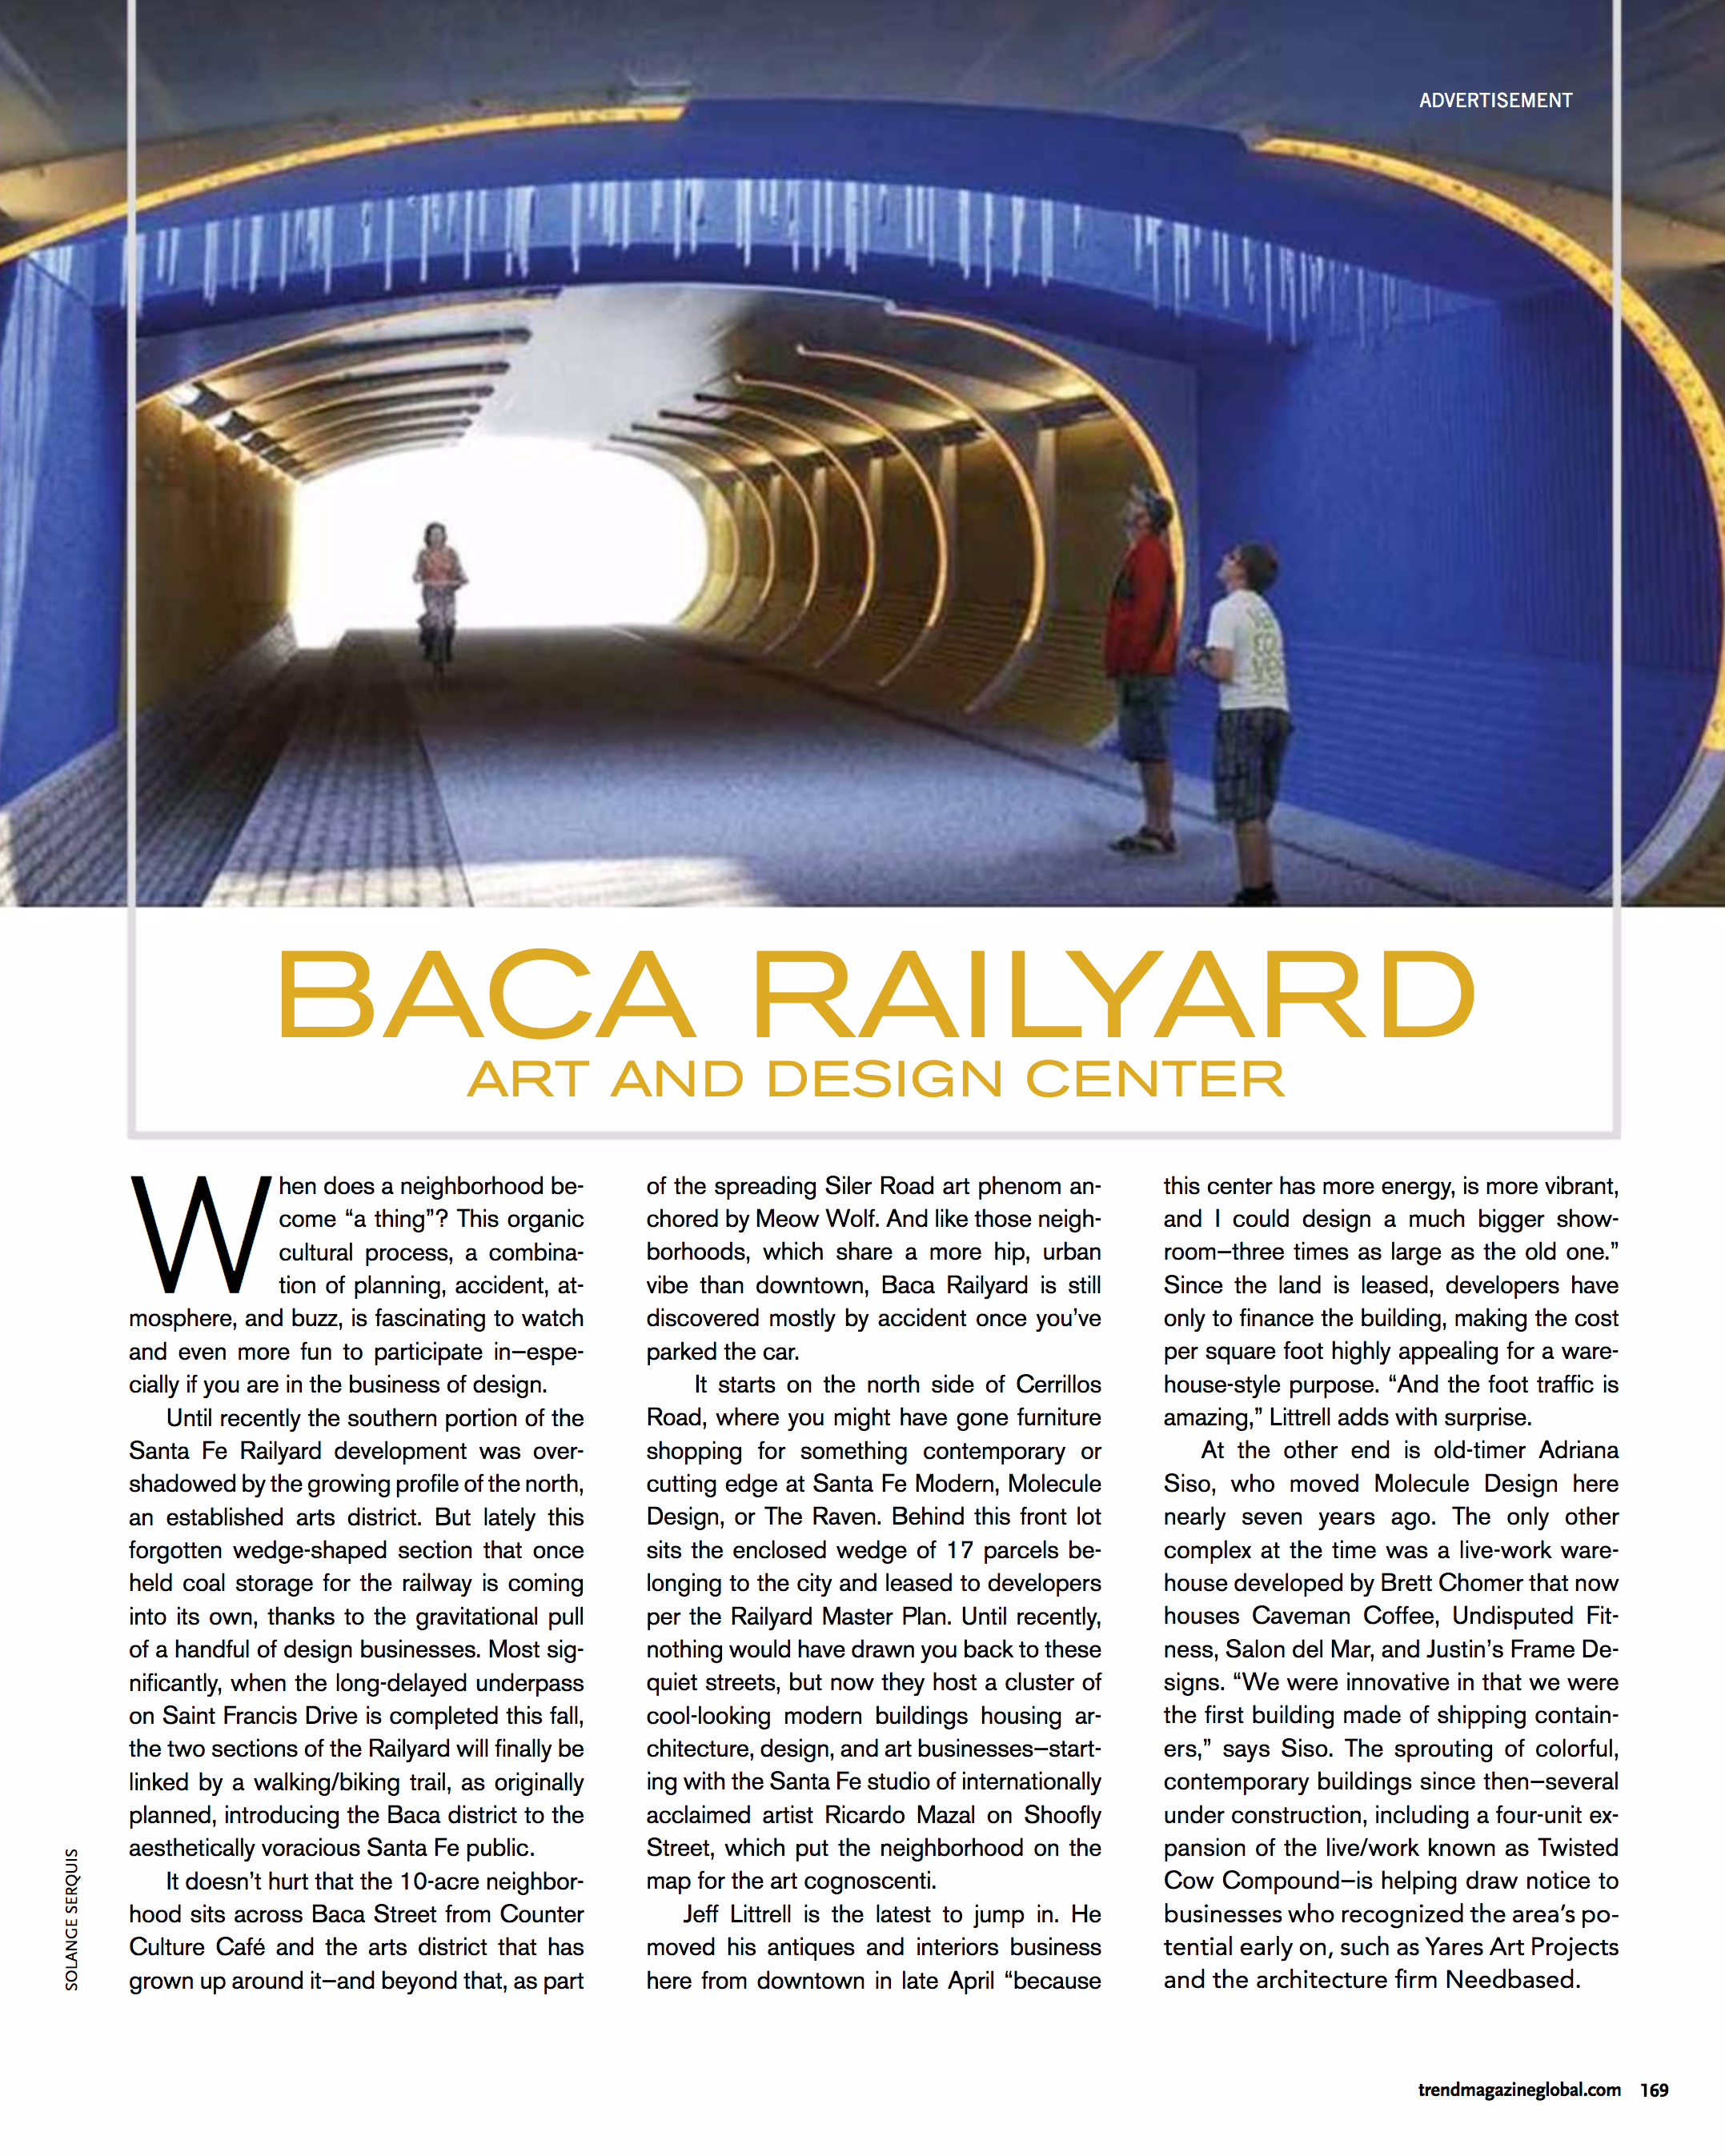 TREND magazine  highlights the Baca Railyard Art and Design Center, June 2017.